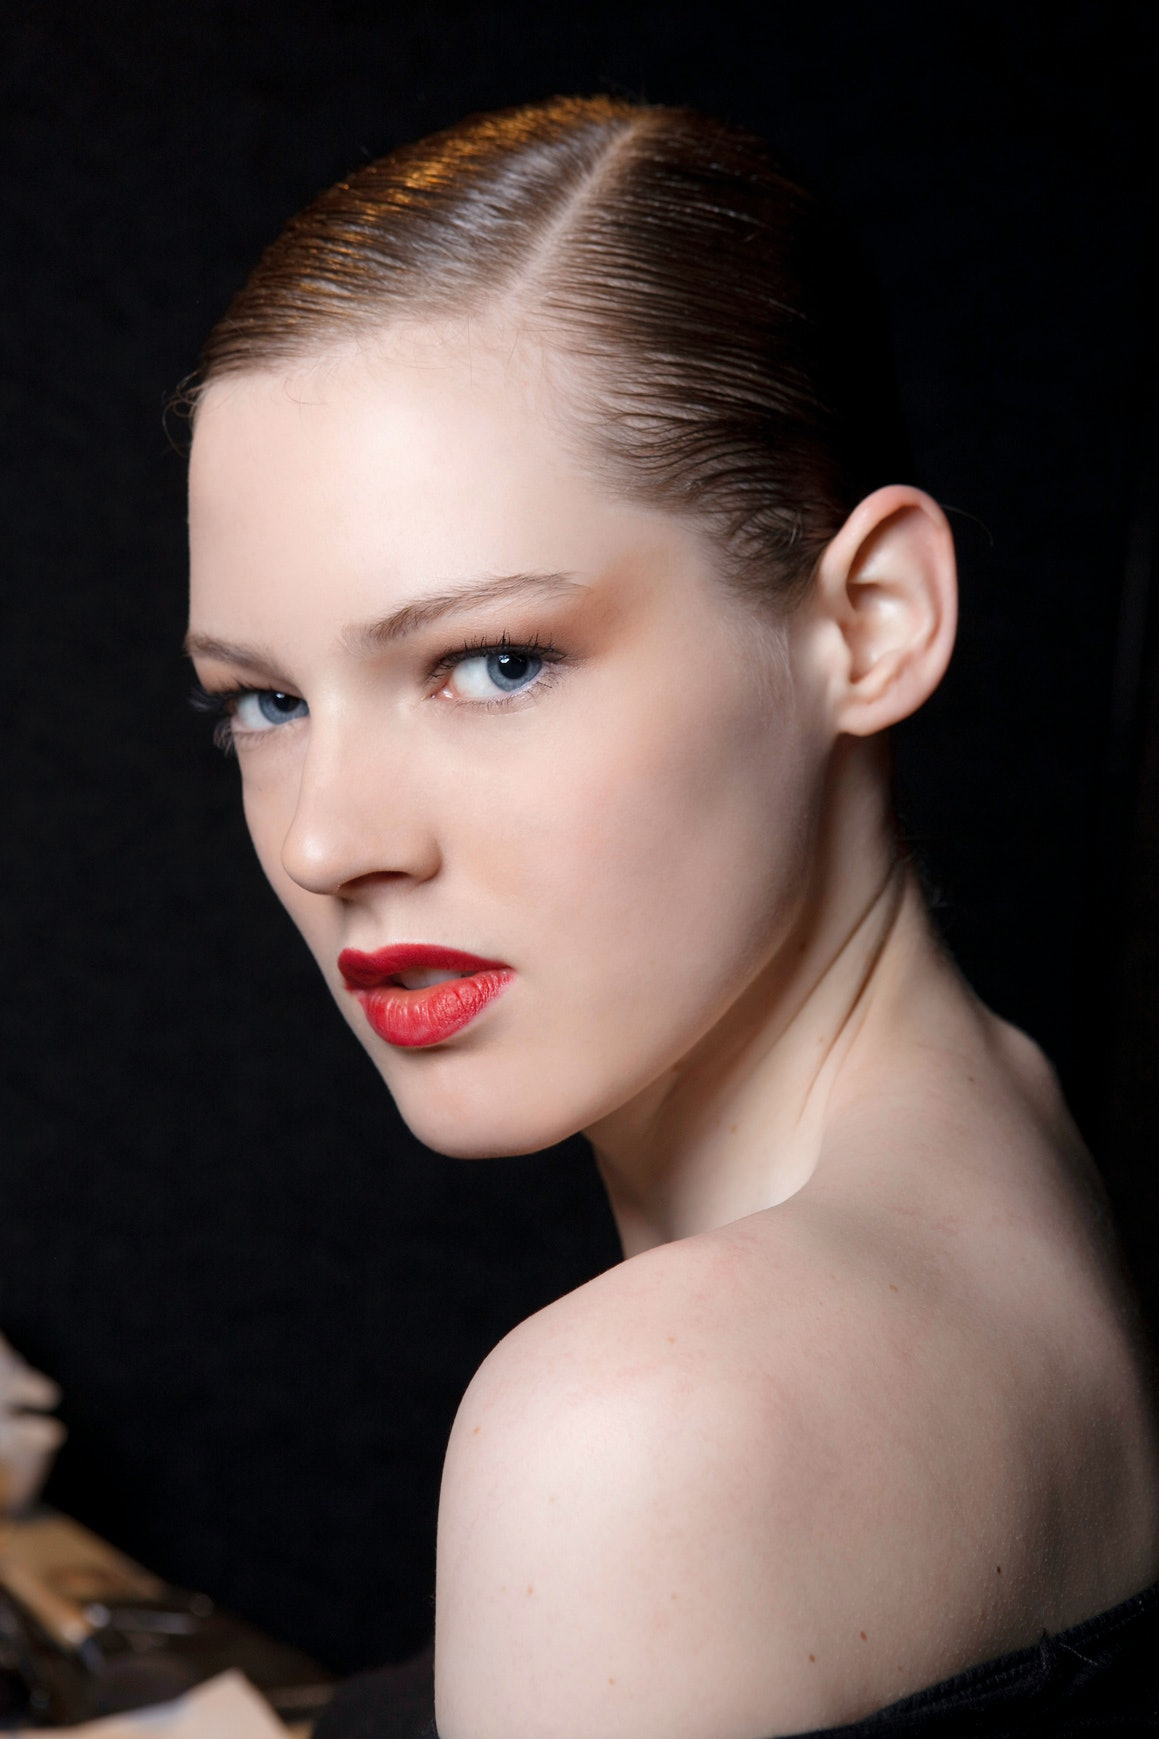 10 Red Lipsticks For Fair Skin That I'll Be Wearing At The Thanksgiving Dinner Table